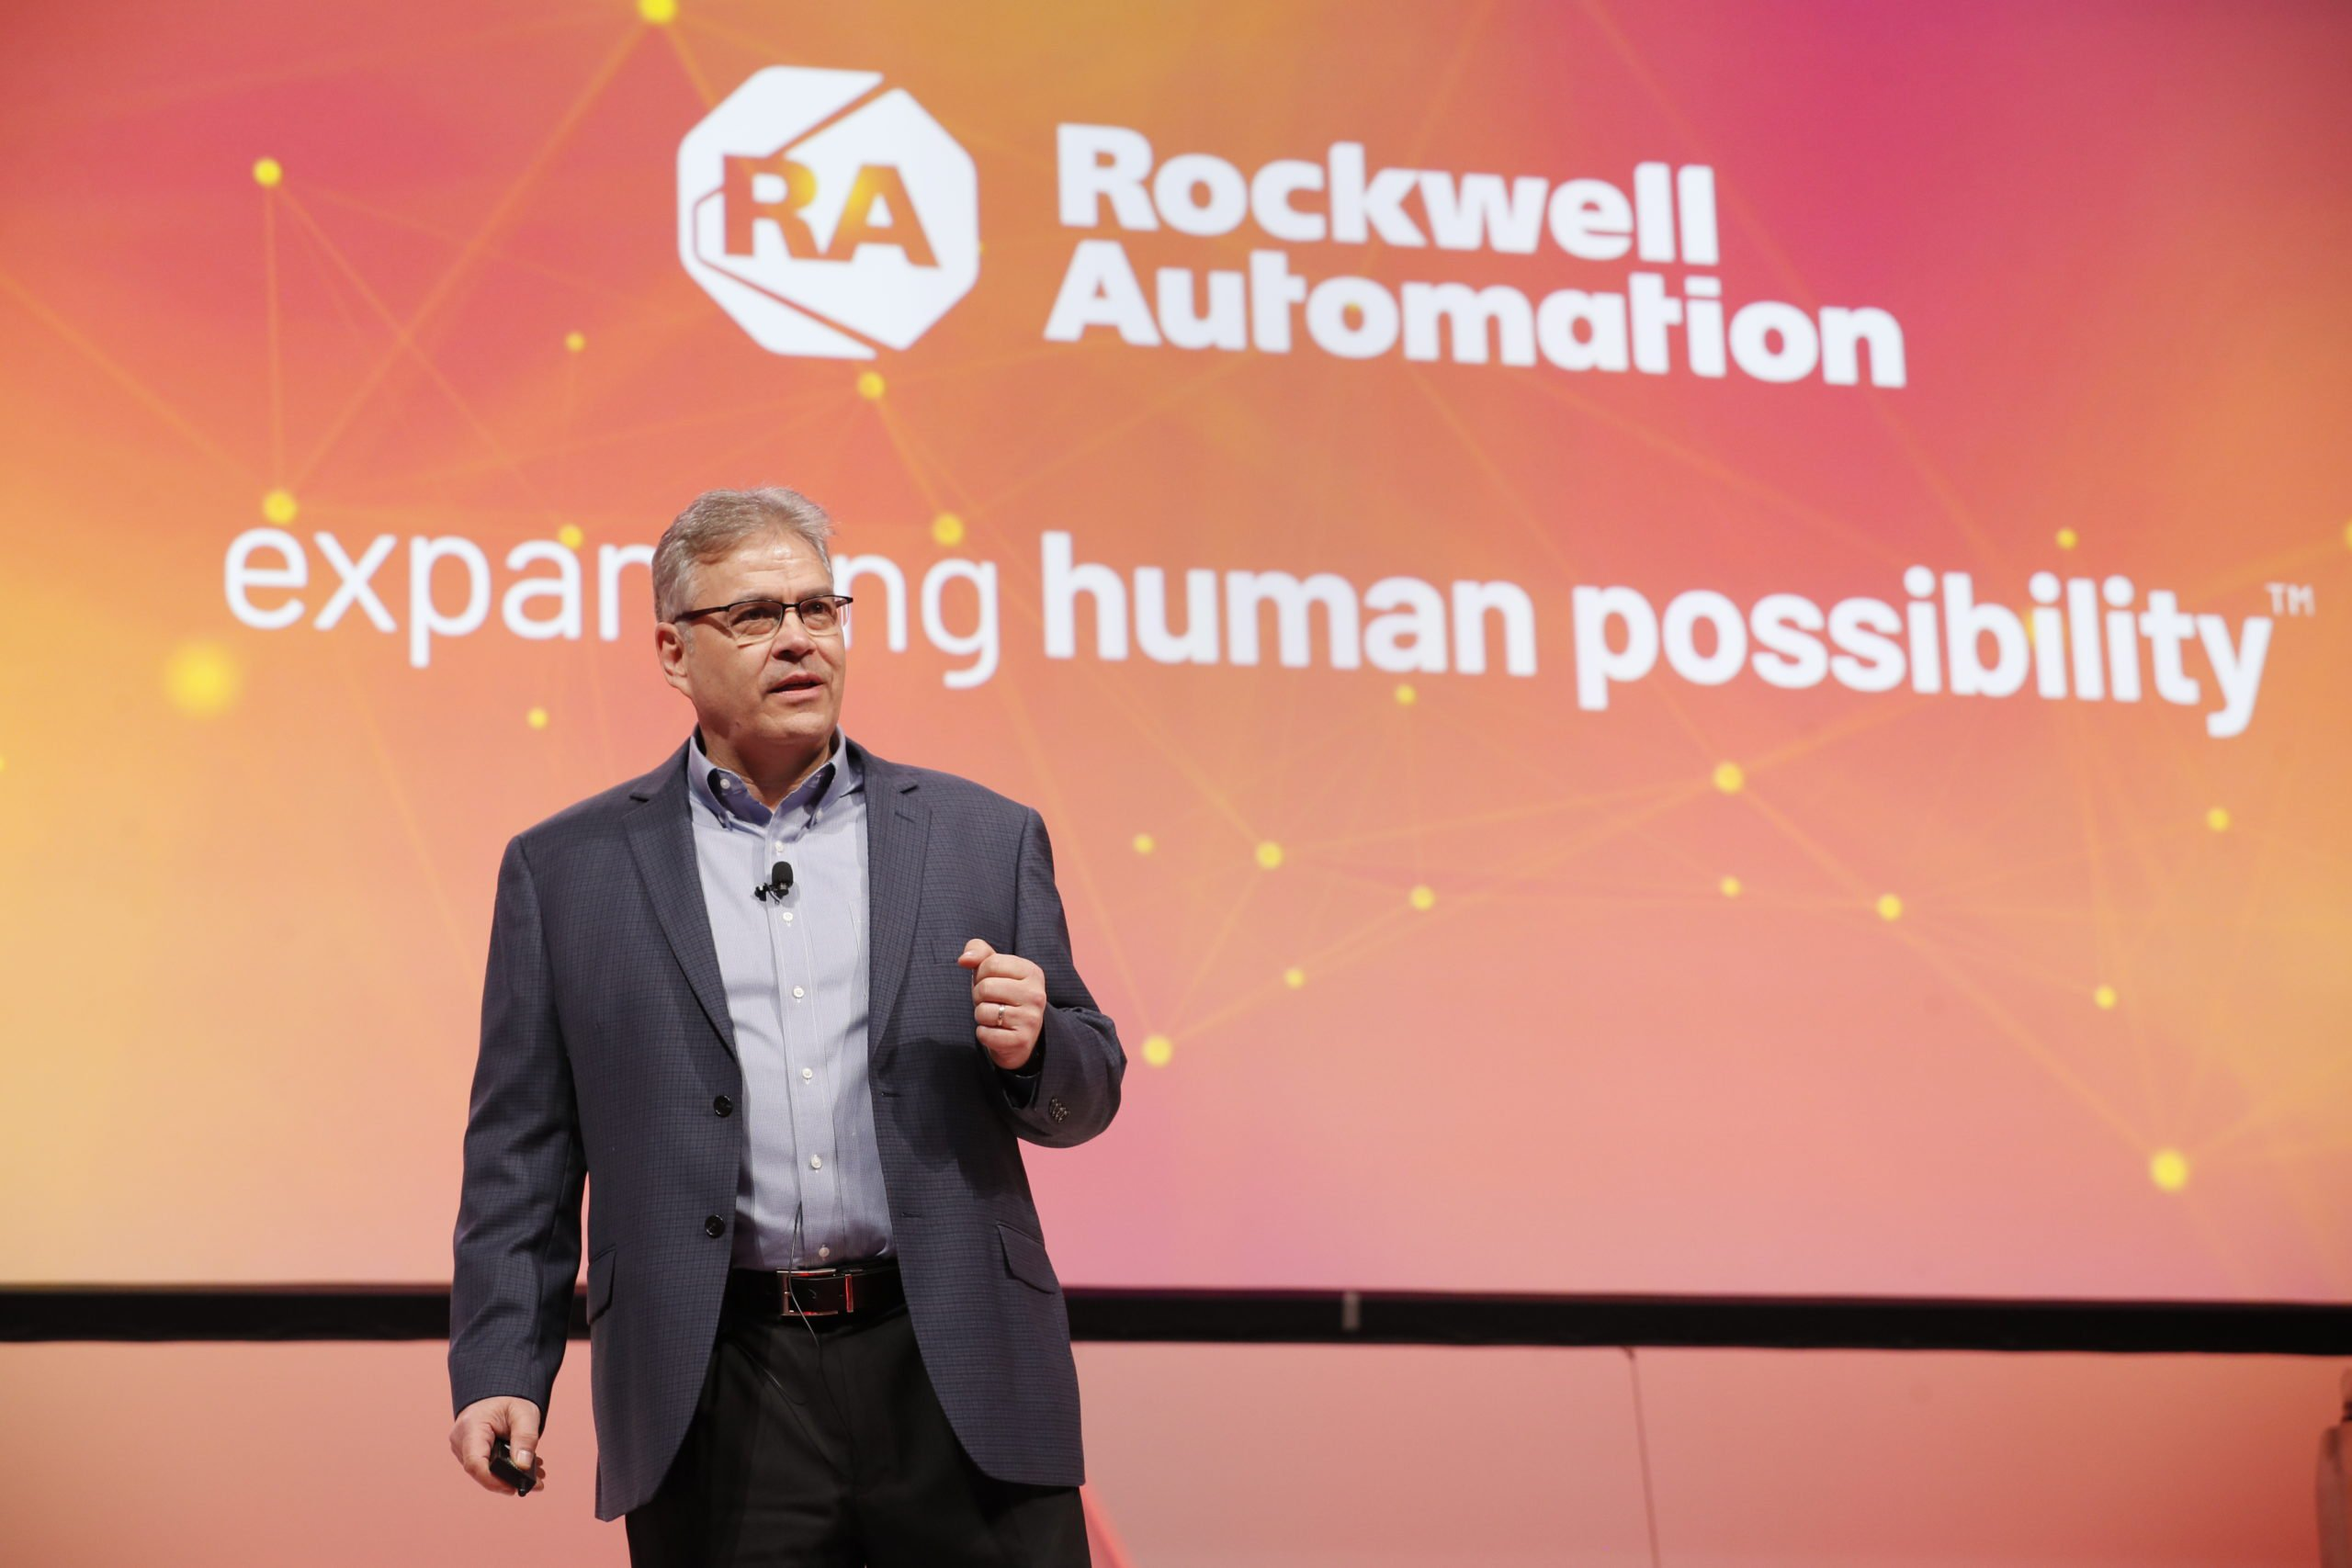 Attend training sessions at Rockwell Automation on the Move